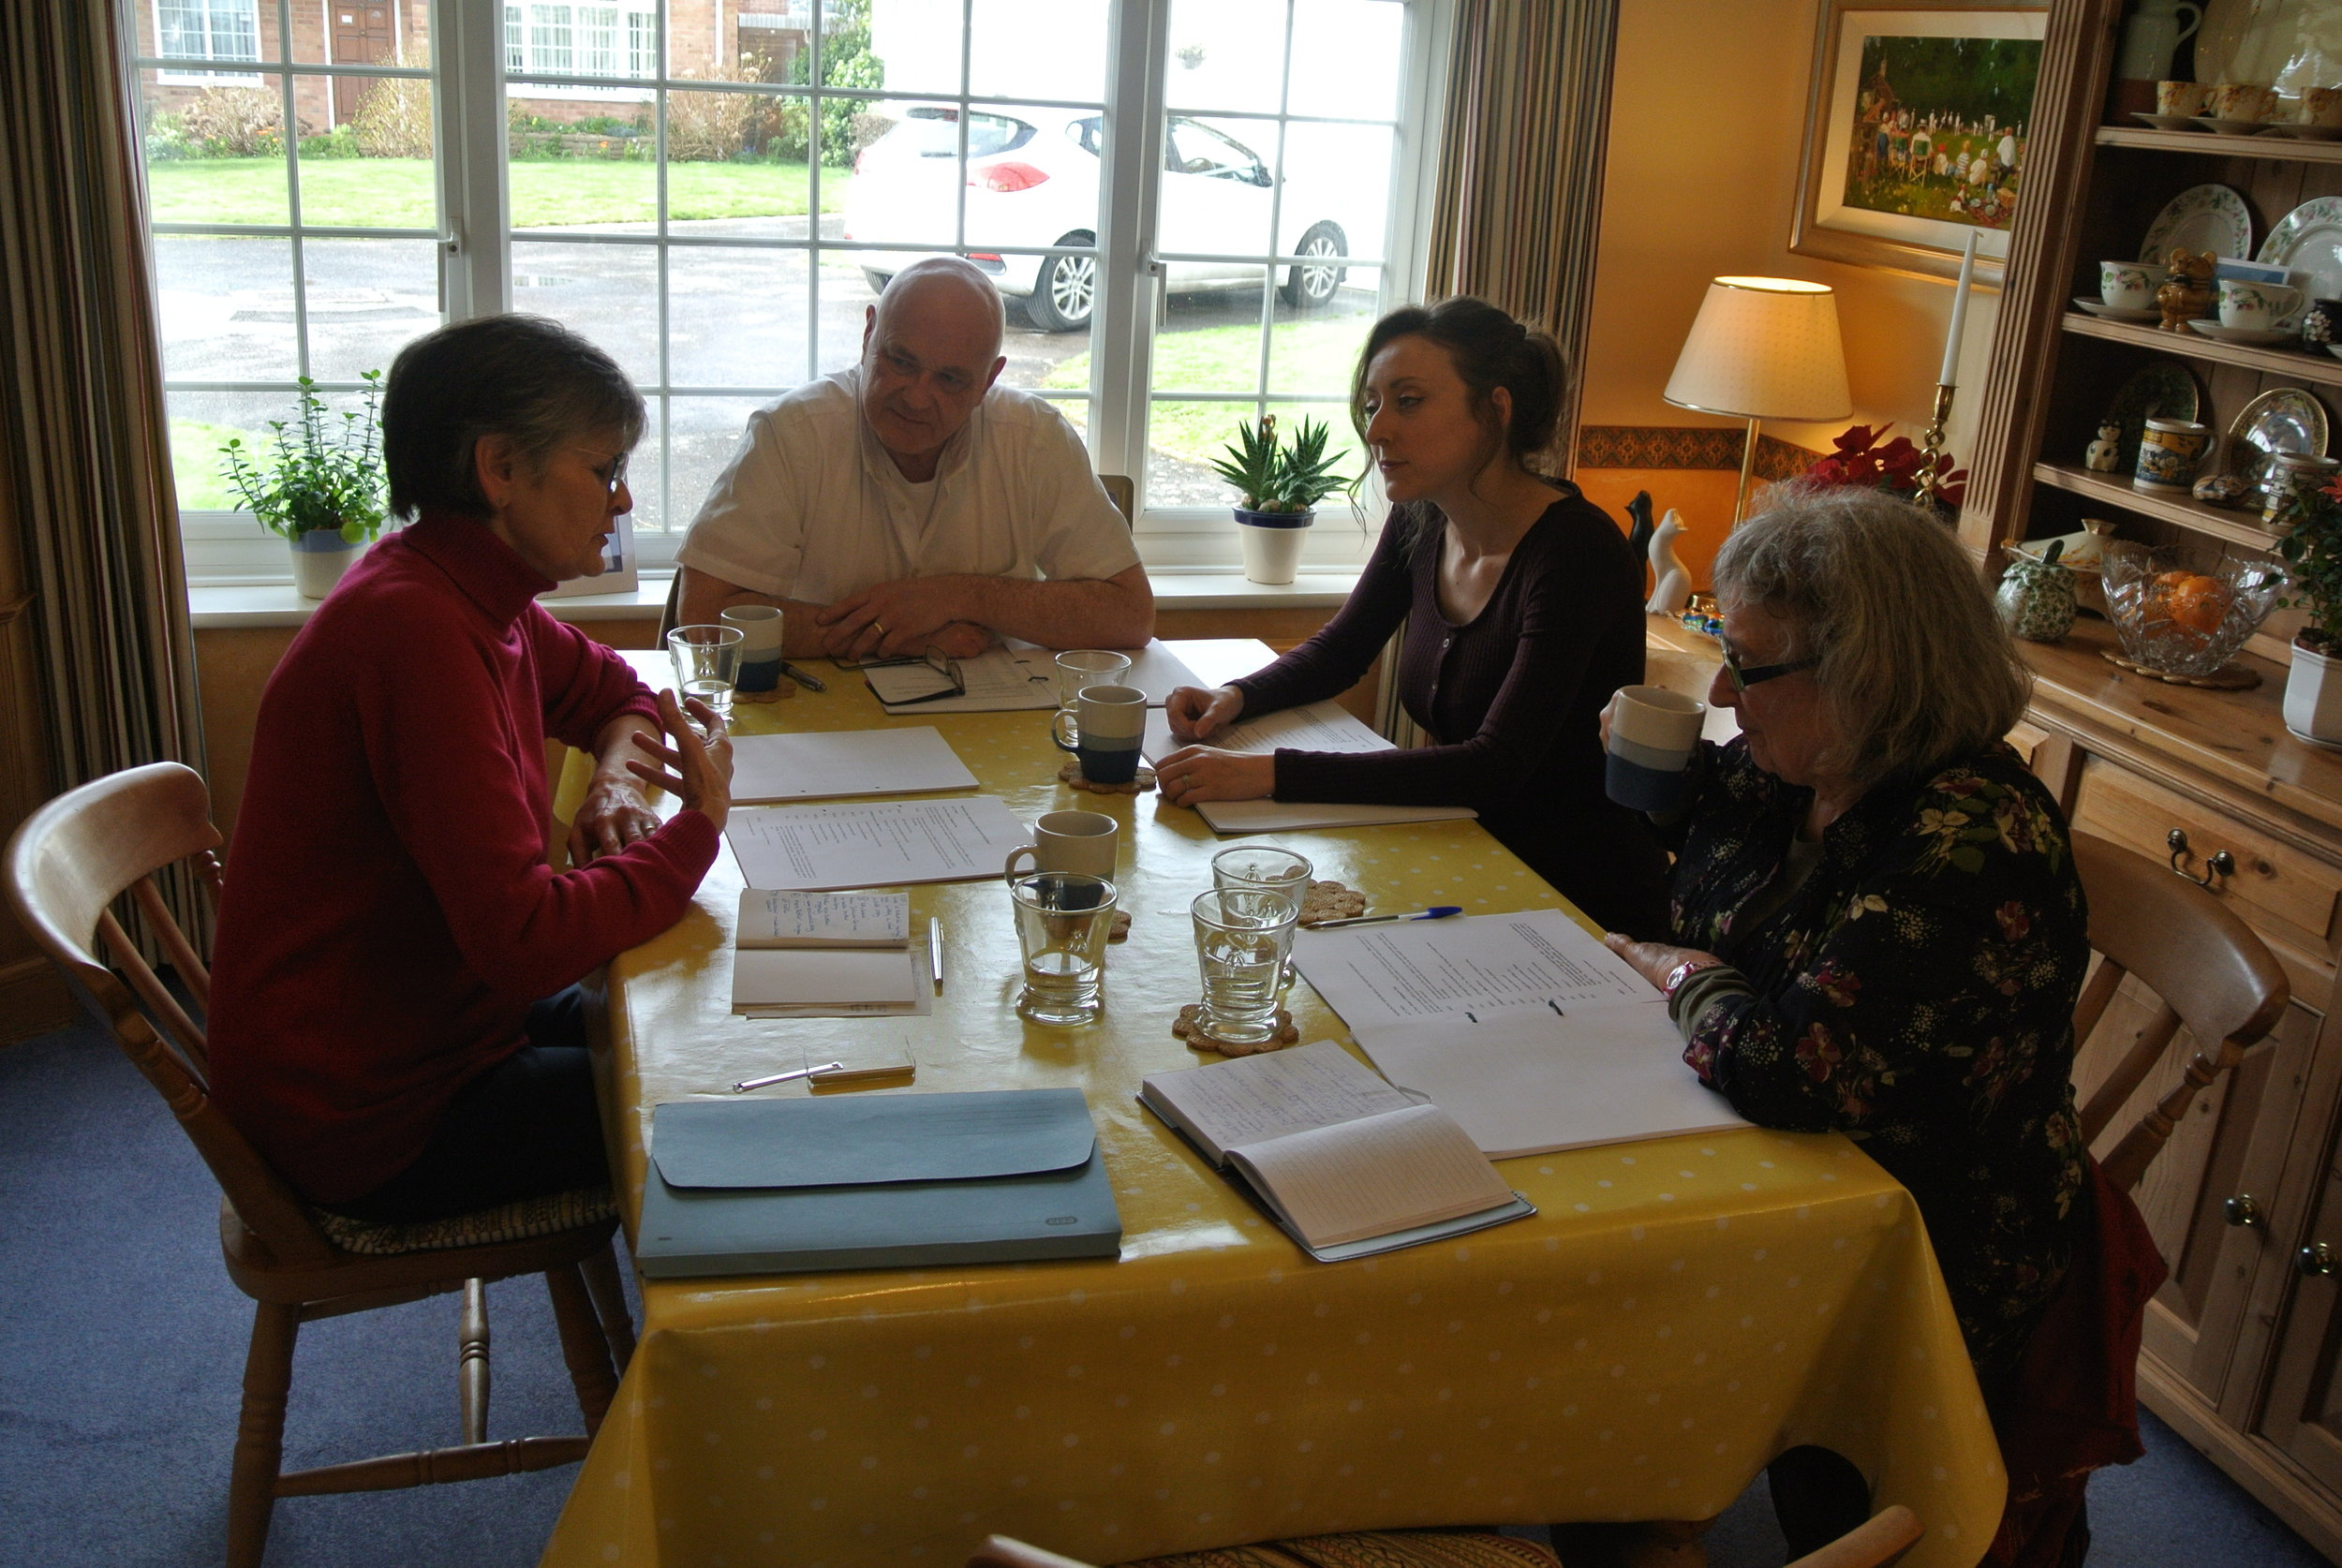 Making people smile is a serious business. Annie, Russell, Celia and Sian discuss the script.